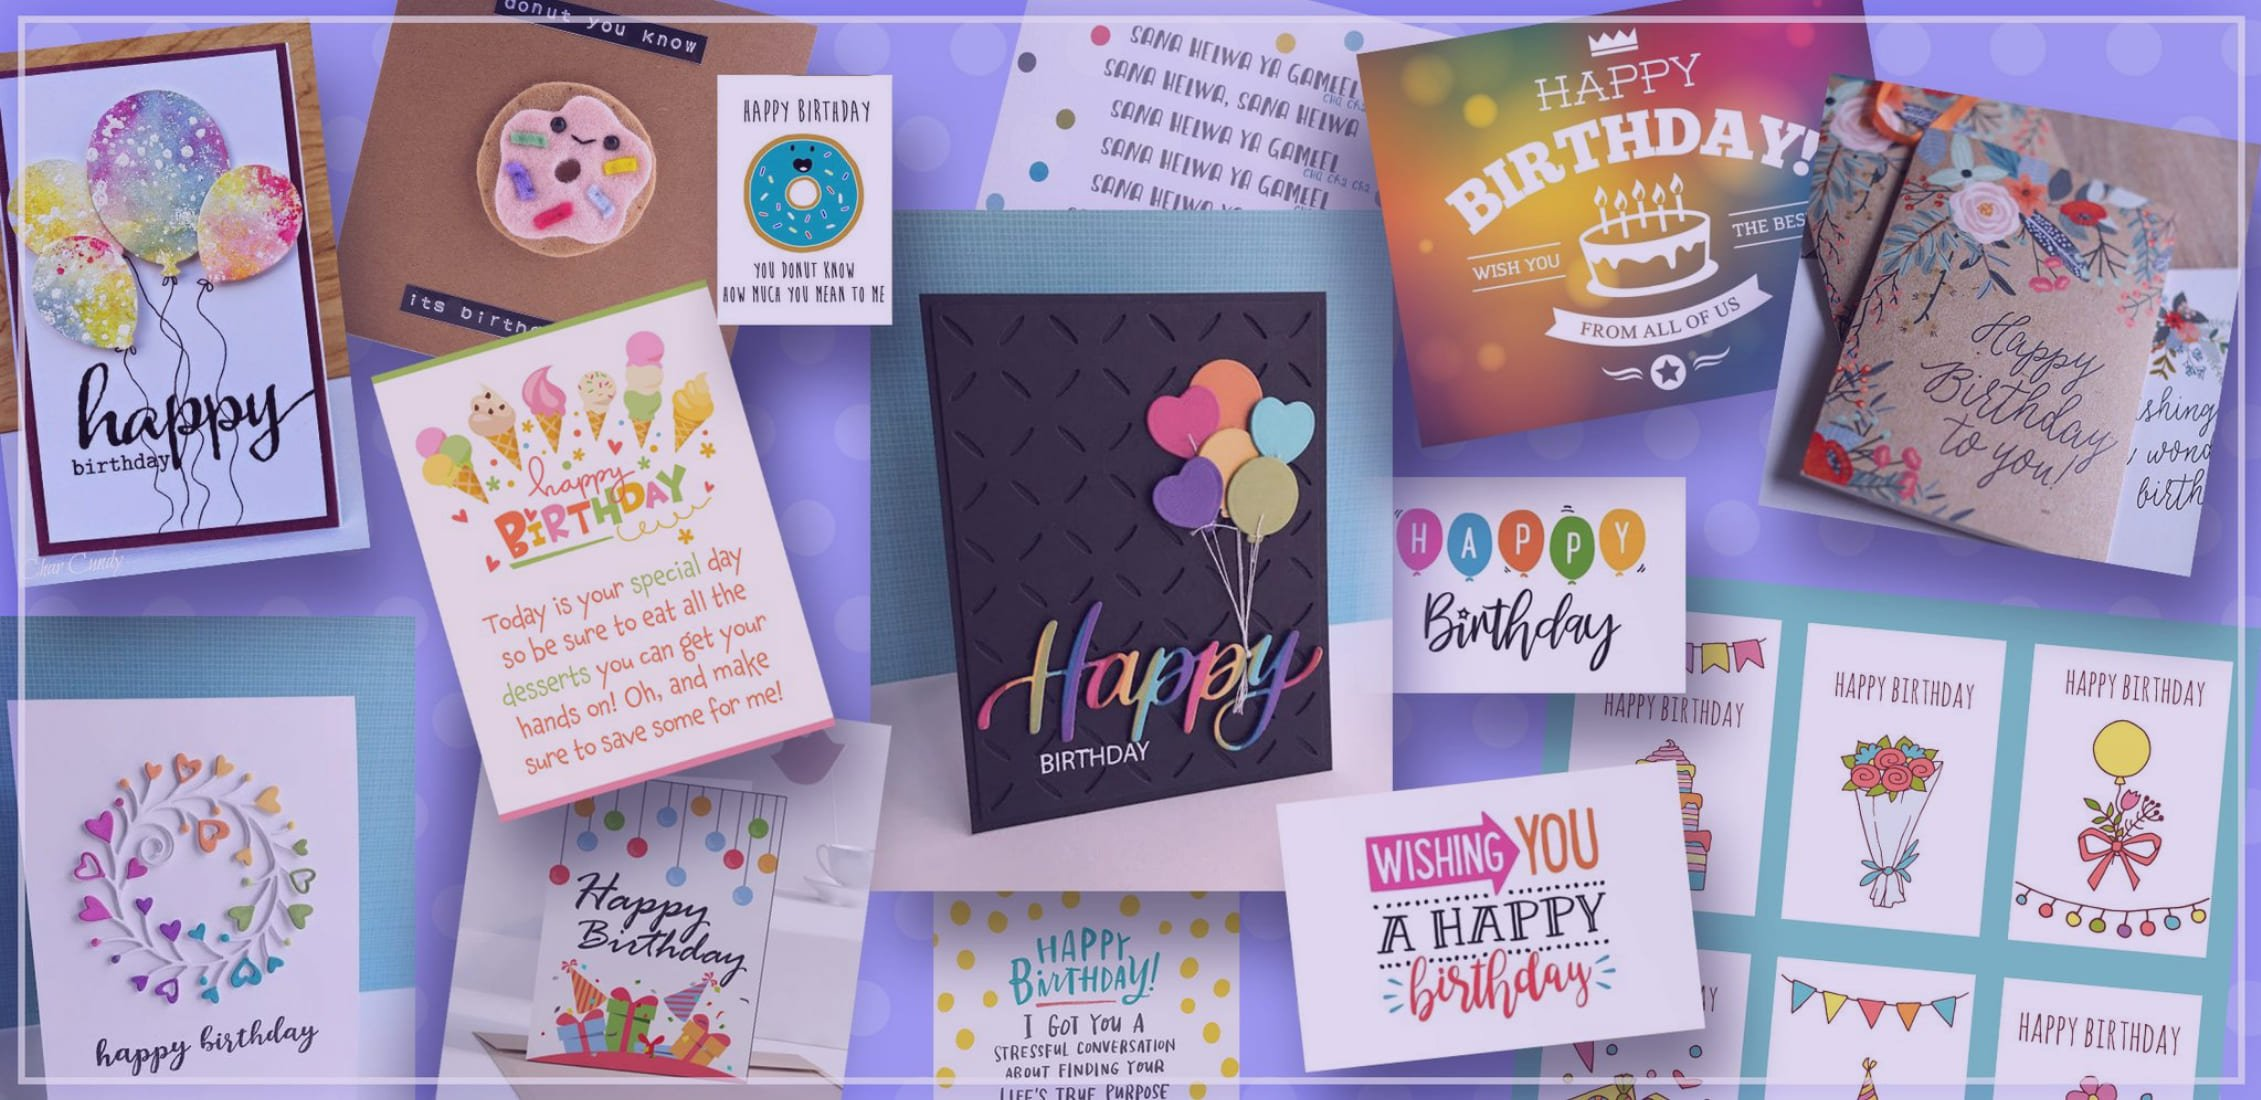 Examples of cool birthday cards for him and her.